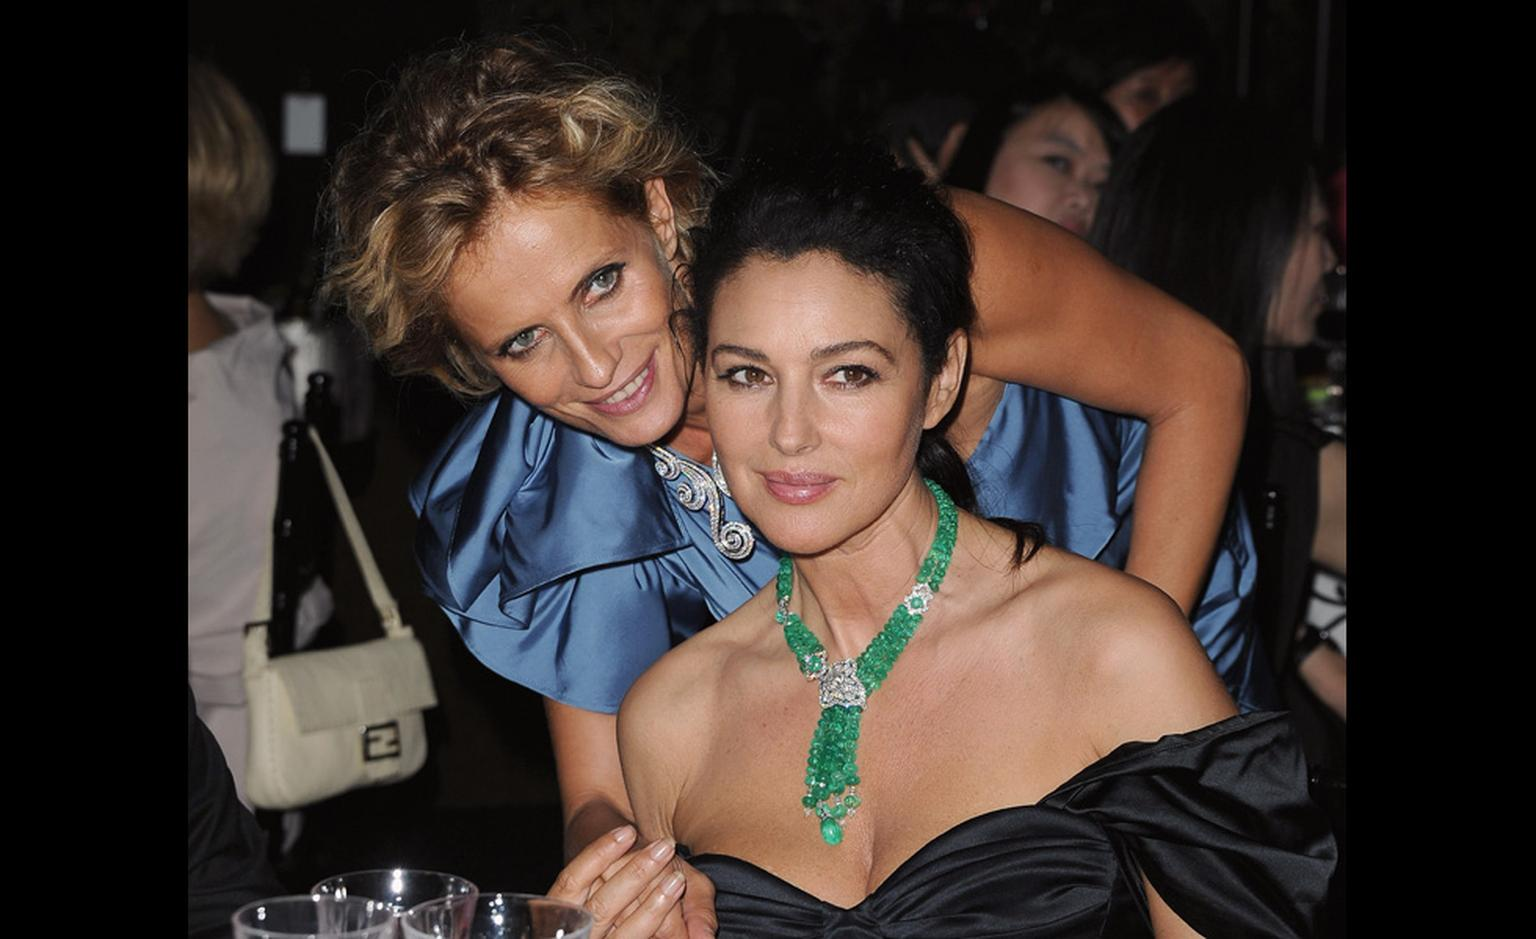 Isabella Ferrari with Monica Belluci at the dinner by chef Emanuele Scarello to celebrate the launch of Cartier's high jewellery collection.